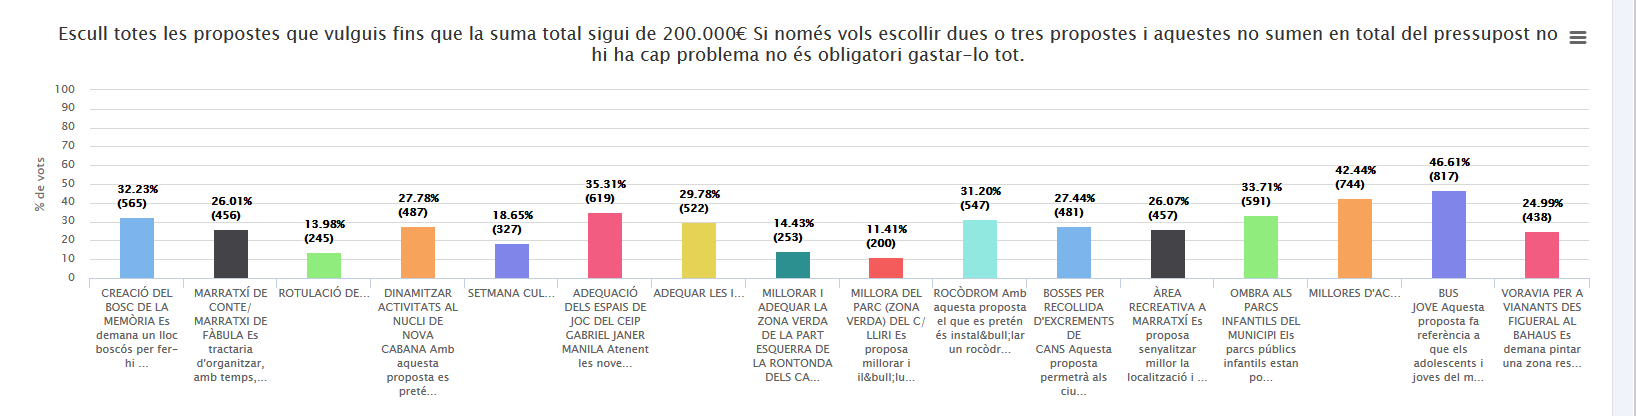 RESULTATS PARTICIPATIUS 2018_cat